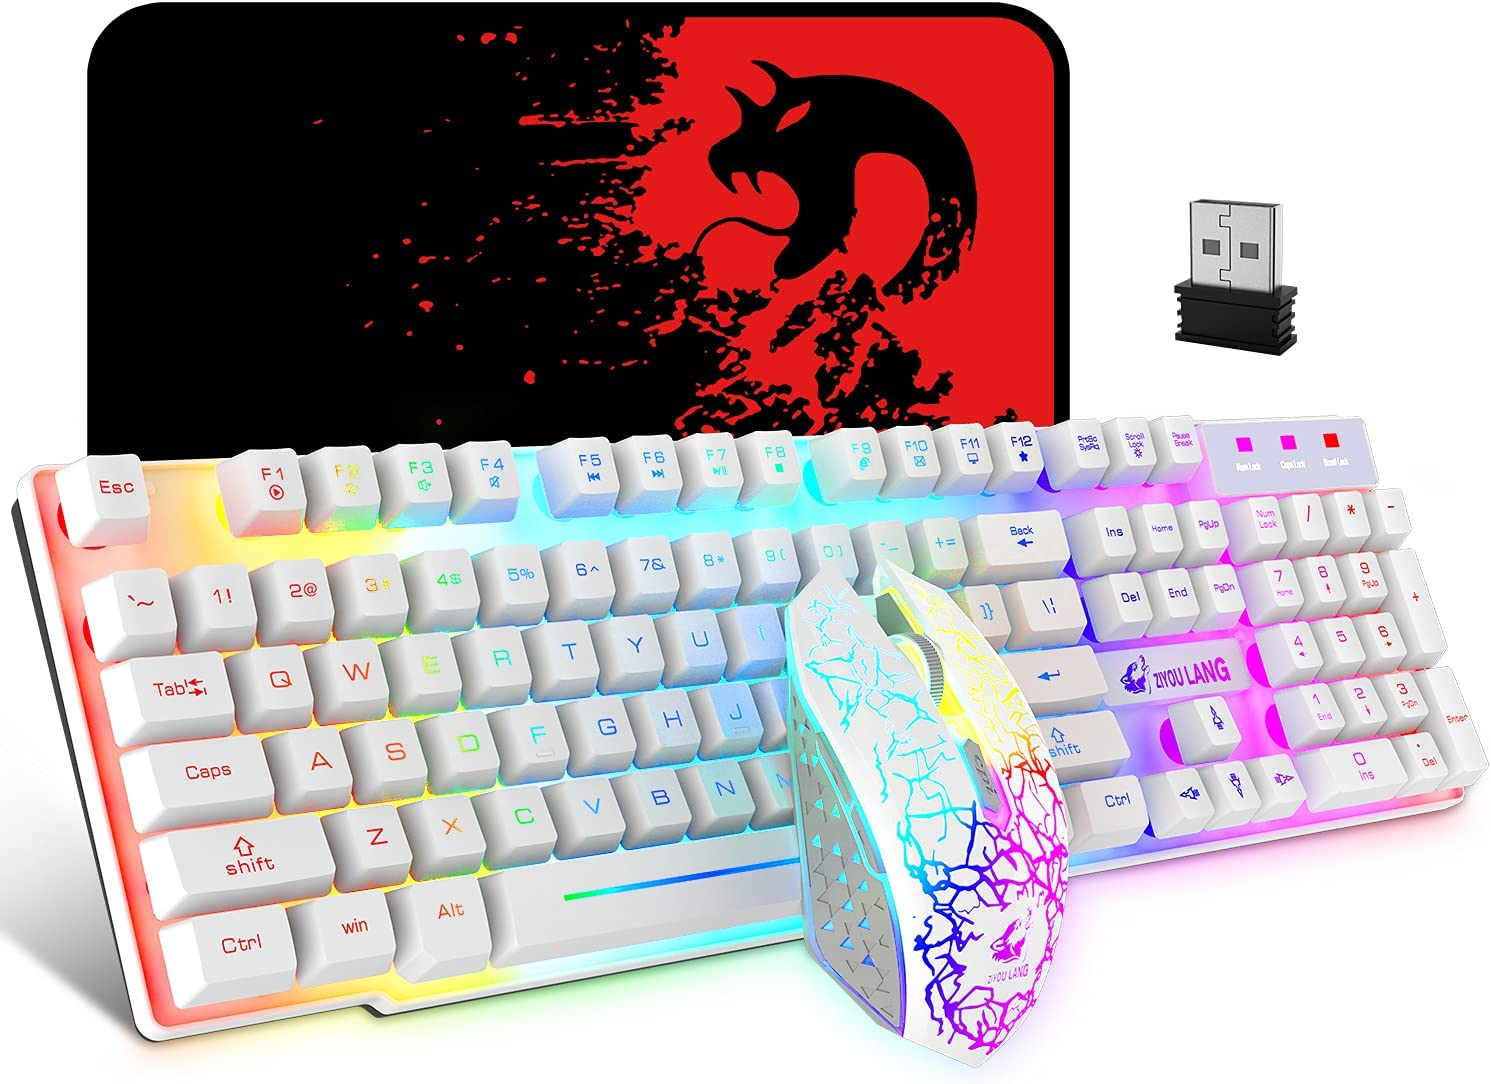 Wireless Gaming Keyboard and Mouse,Rechargeable Rainbow Backlit Keyboard Mouse with 3800mAh Battery,Mechanical Feel Gaming Keyboard,7 Color Gaming Mute Mouse,Gaming Mouse Pad for PC Gamer(White)